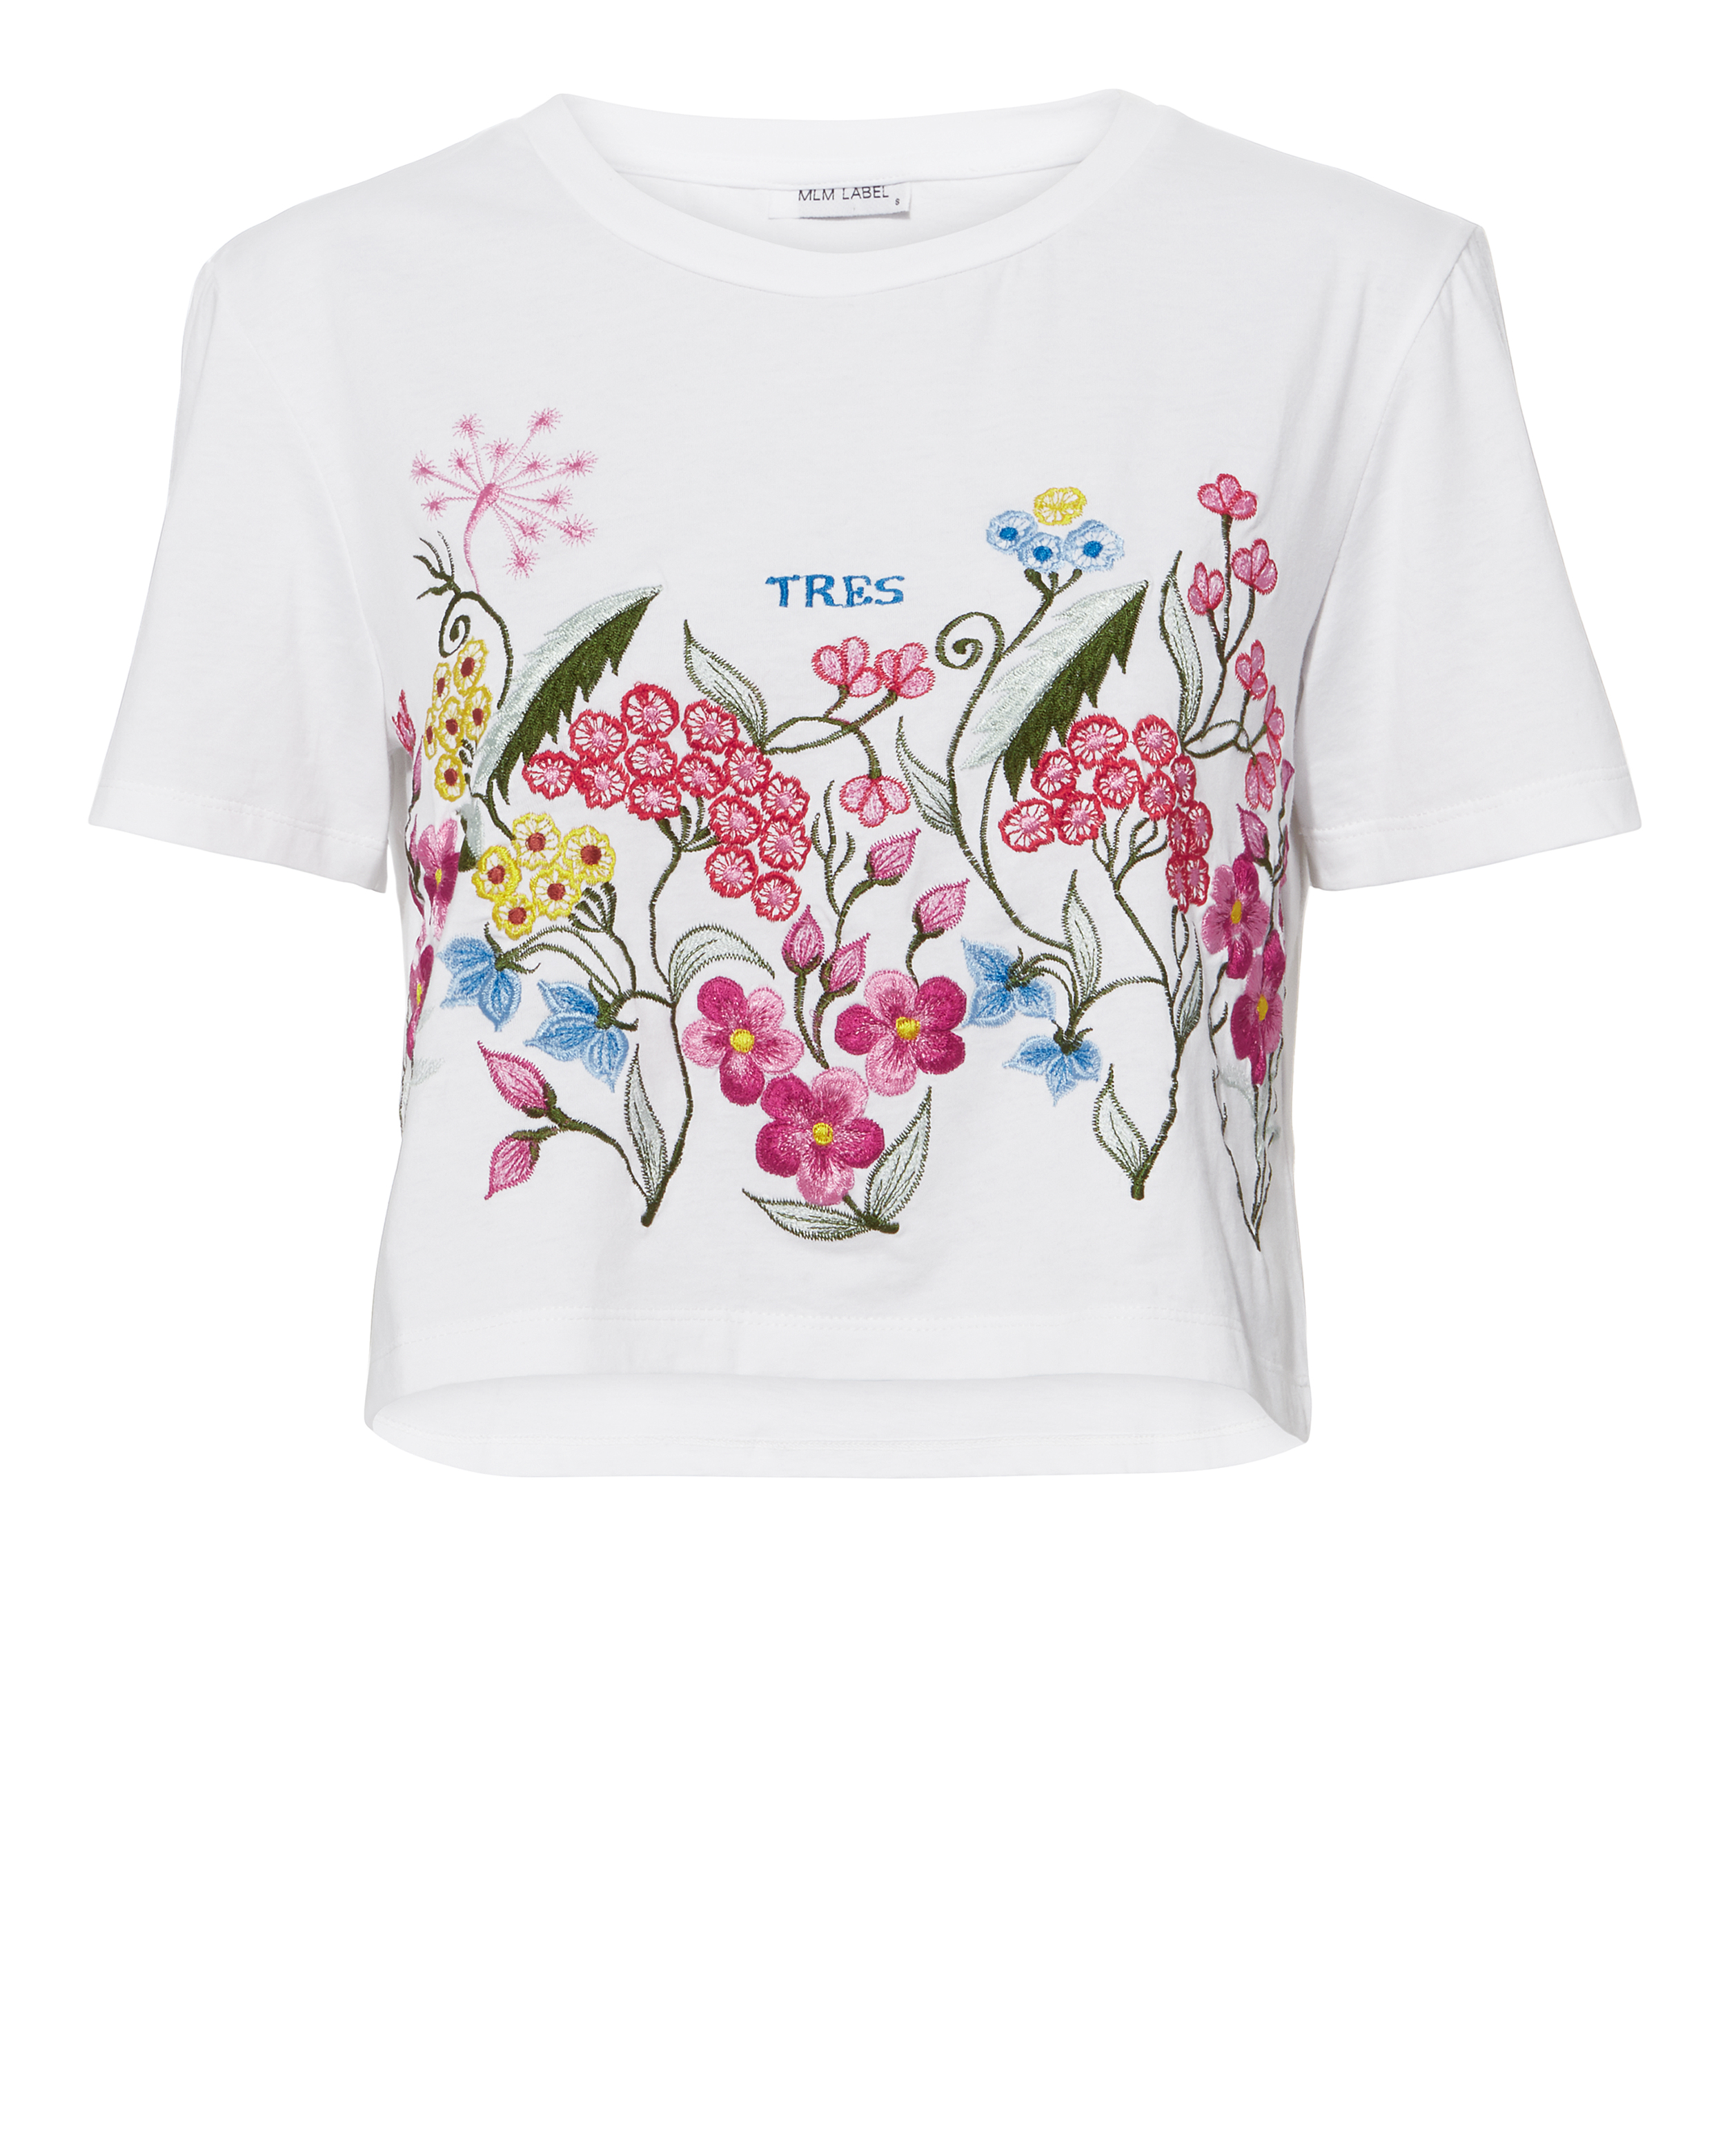 MLM Tres Floral Embroidery Tee